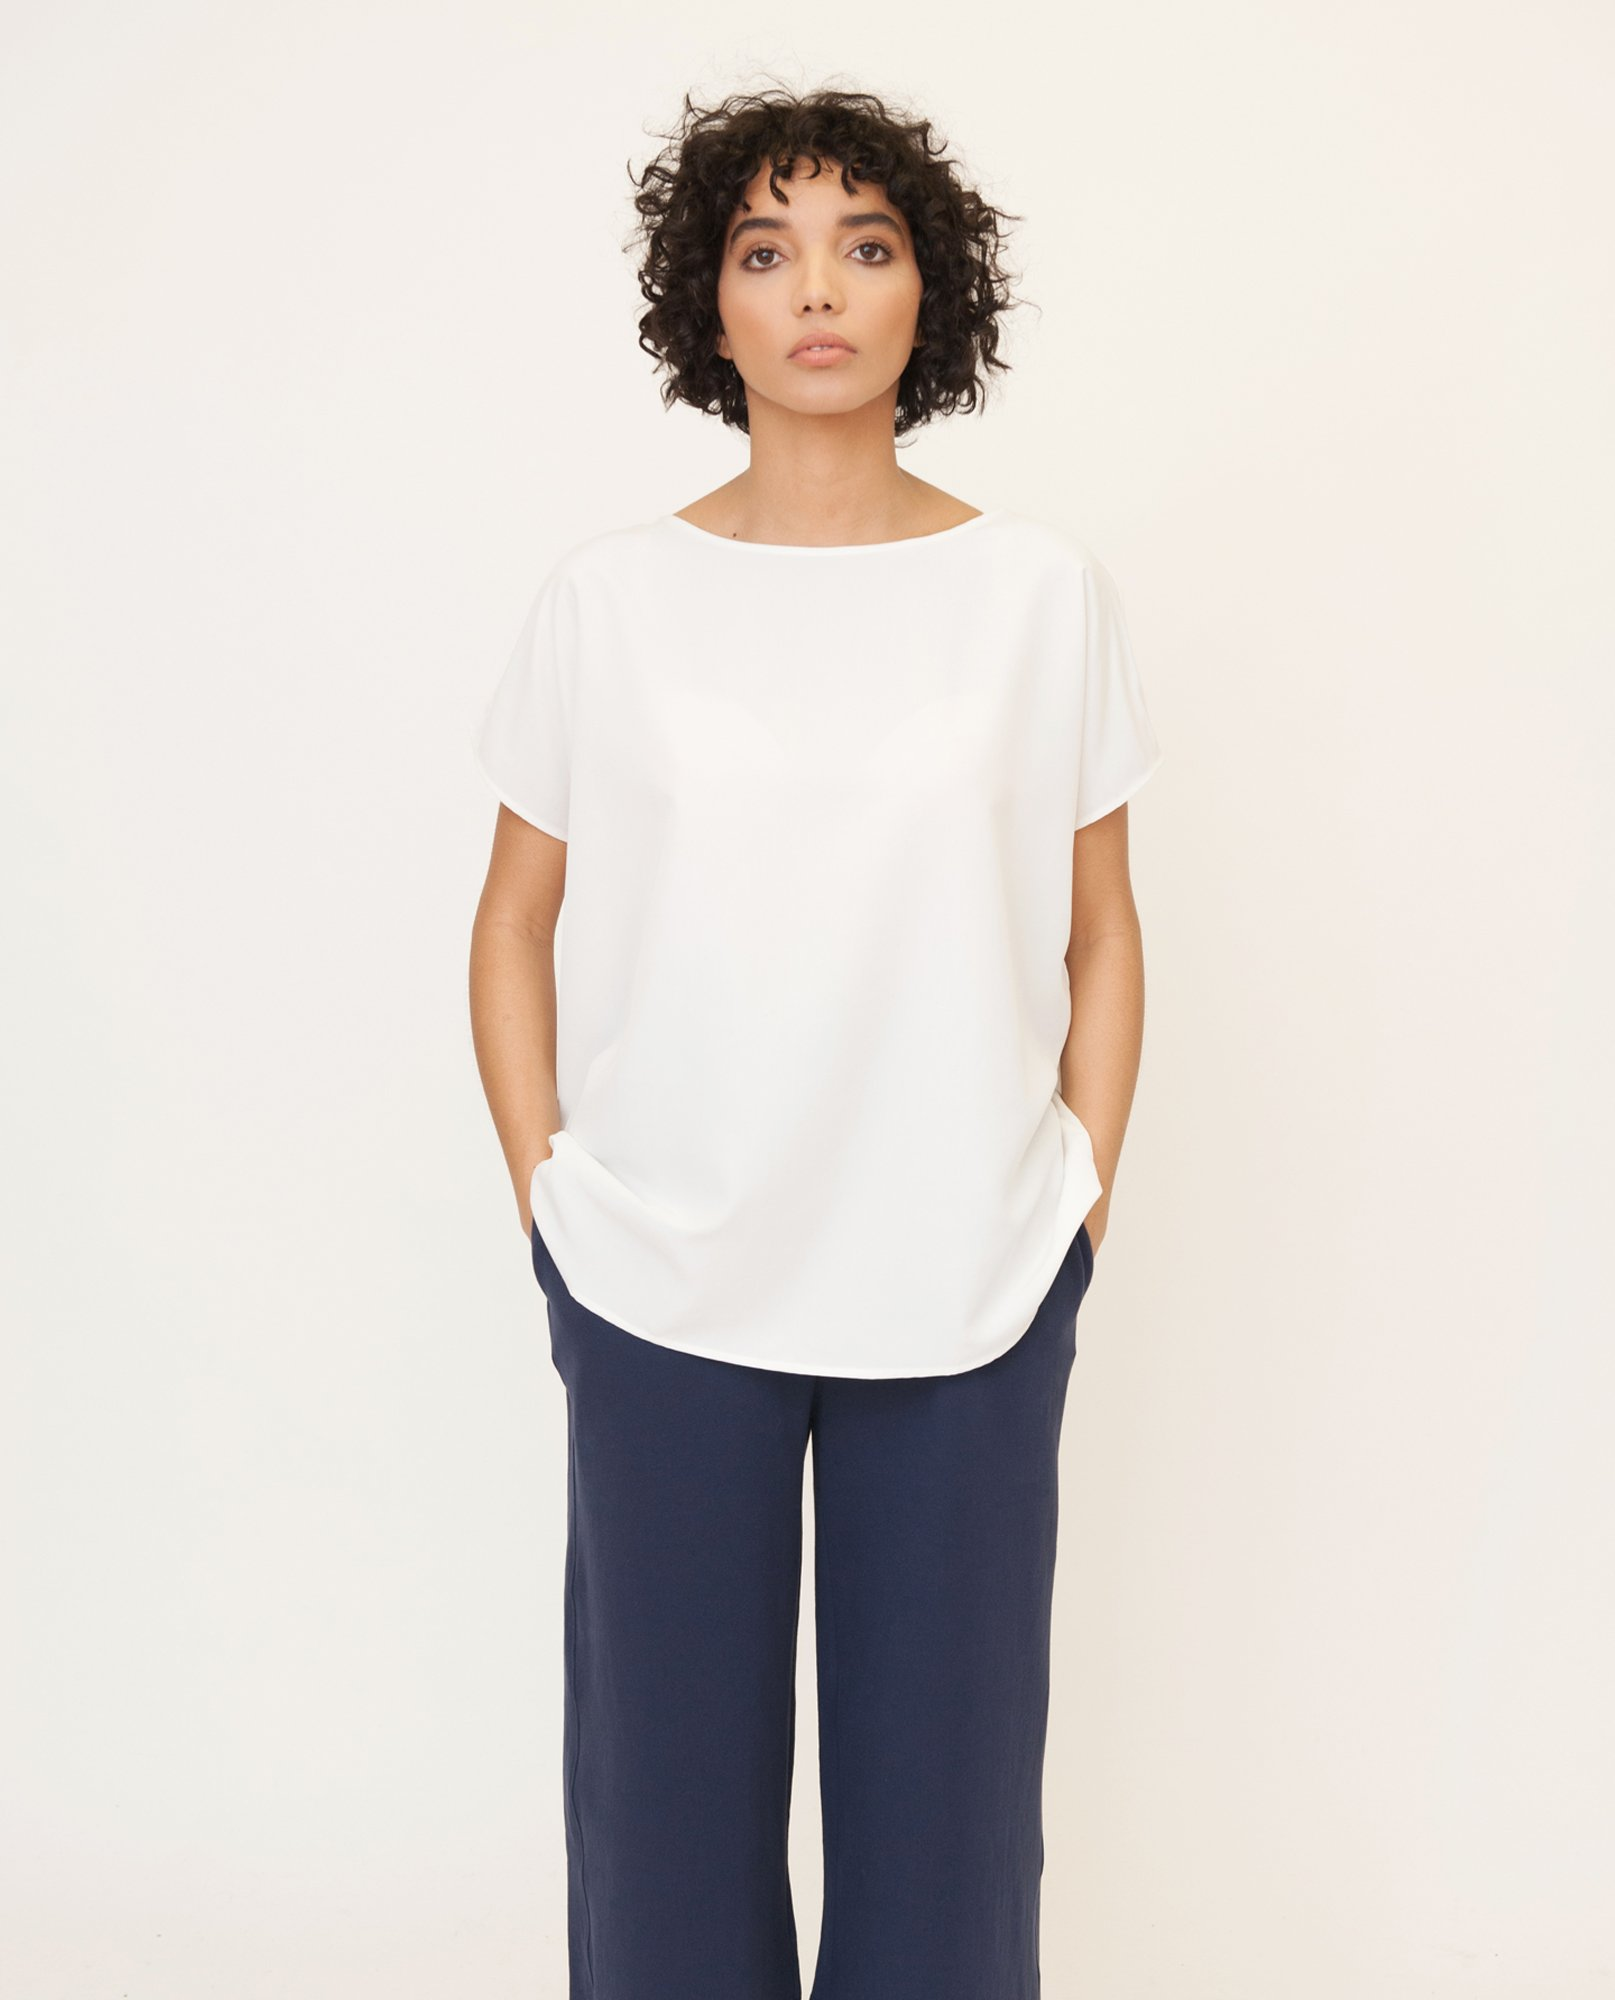 ALINE Modal Top In Off White from Beaumont Organic